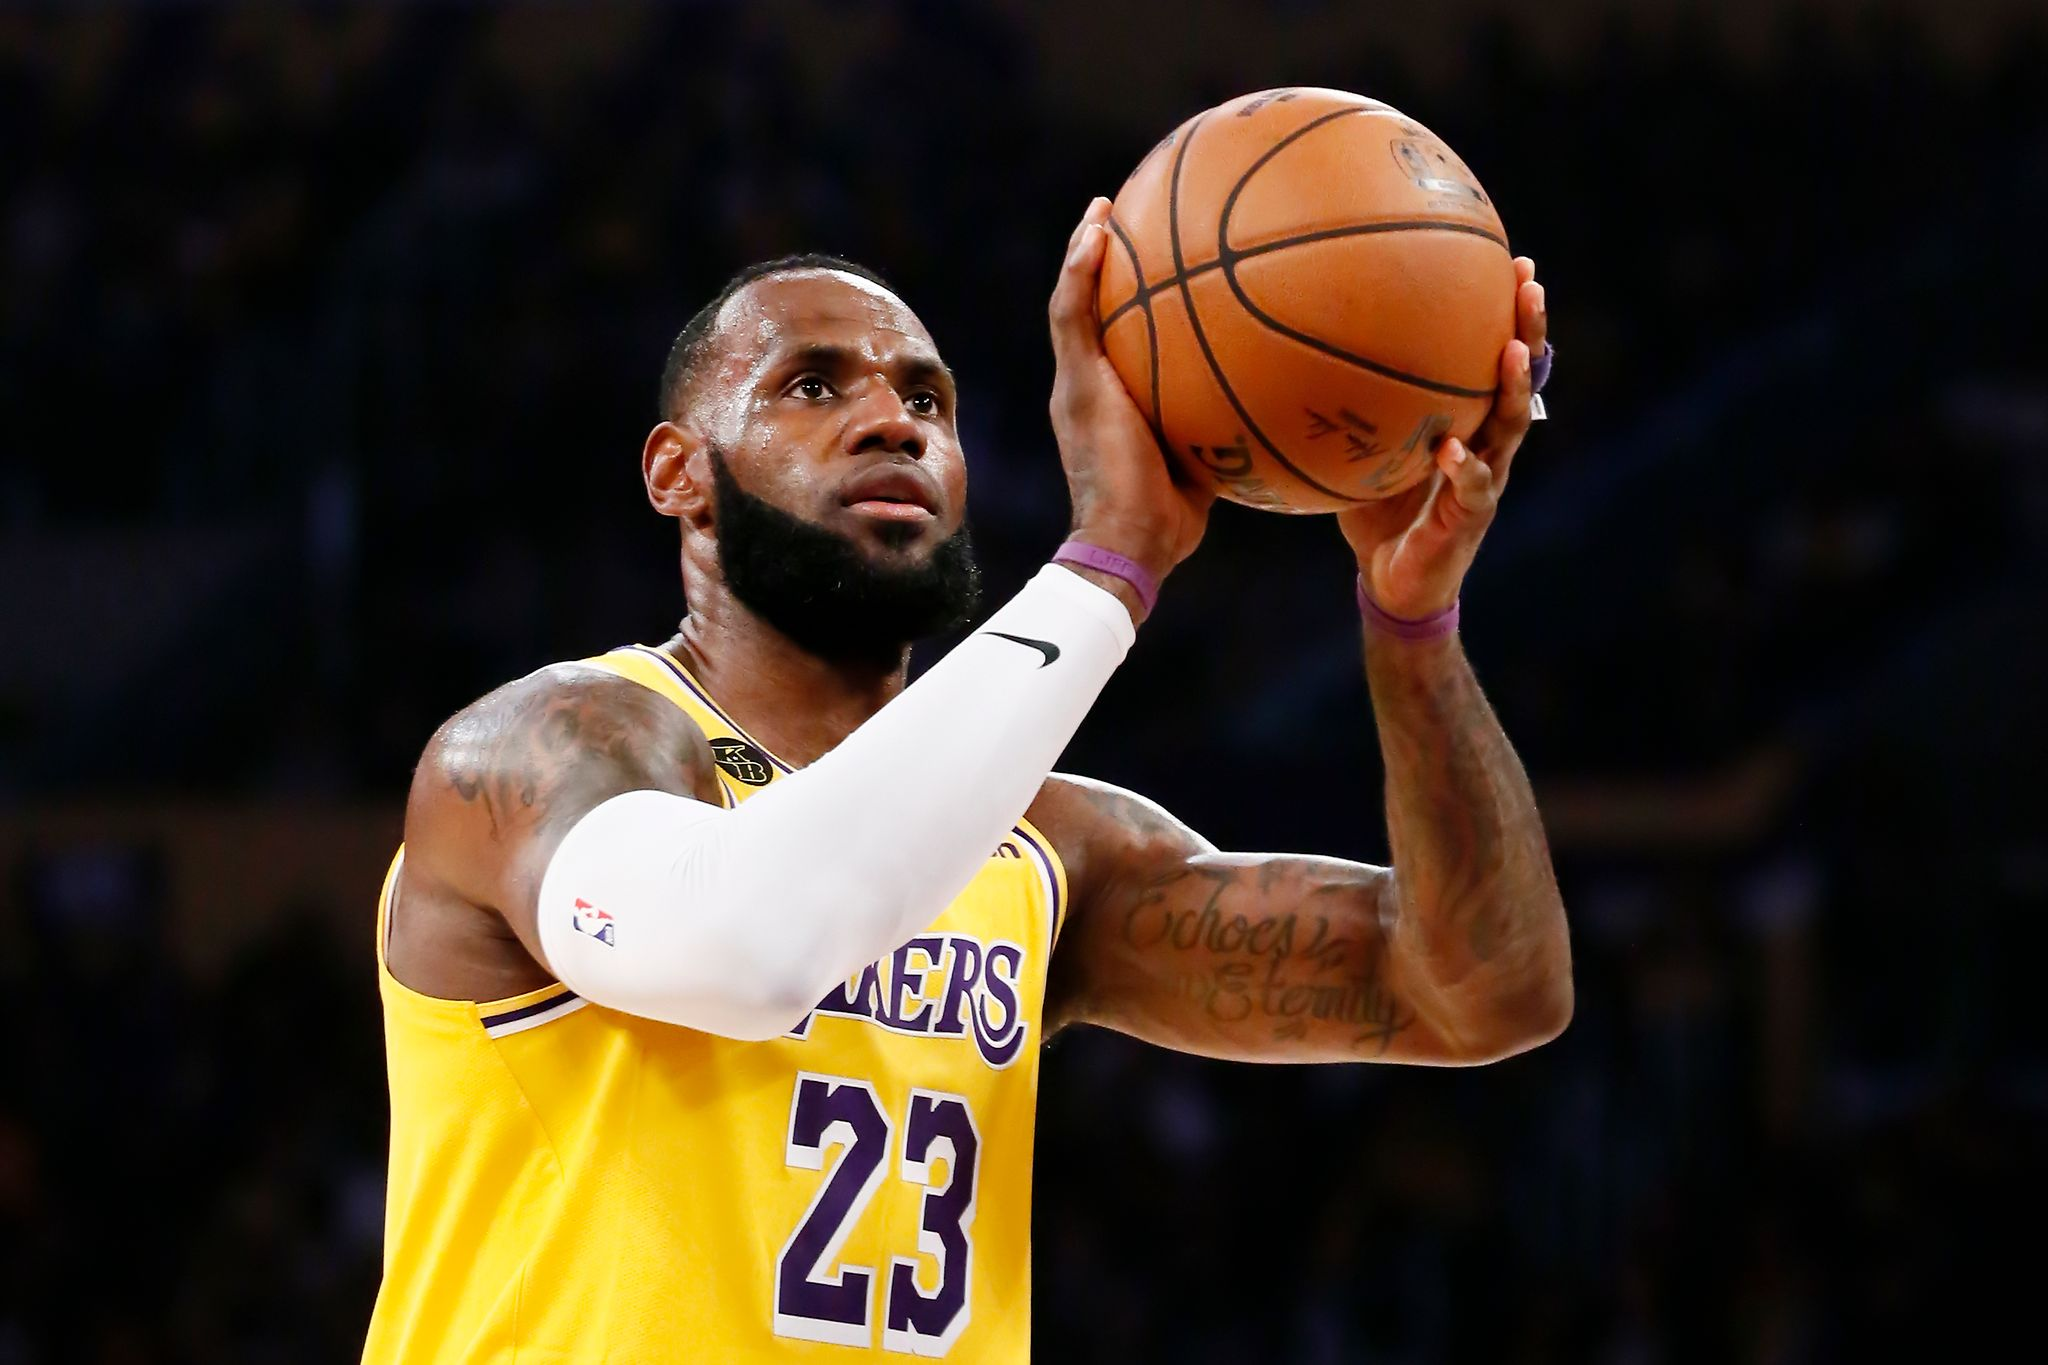 LeBron James #23 of the Los Angeles Lakers is seen at the free throw line during a game against the Brooklyn Nets at the Staples Center on March 10, 2020 in Los Angeles, CA.  | Photo: Getty Images